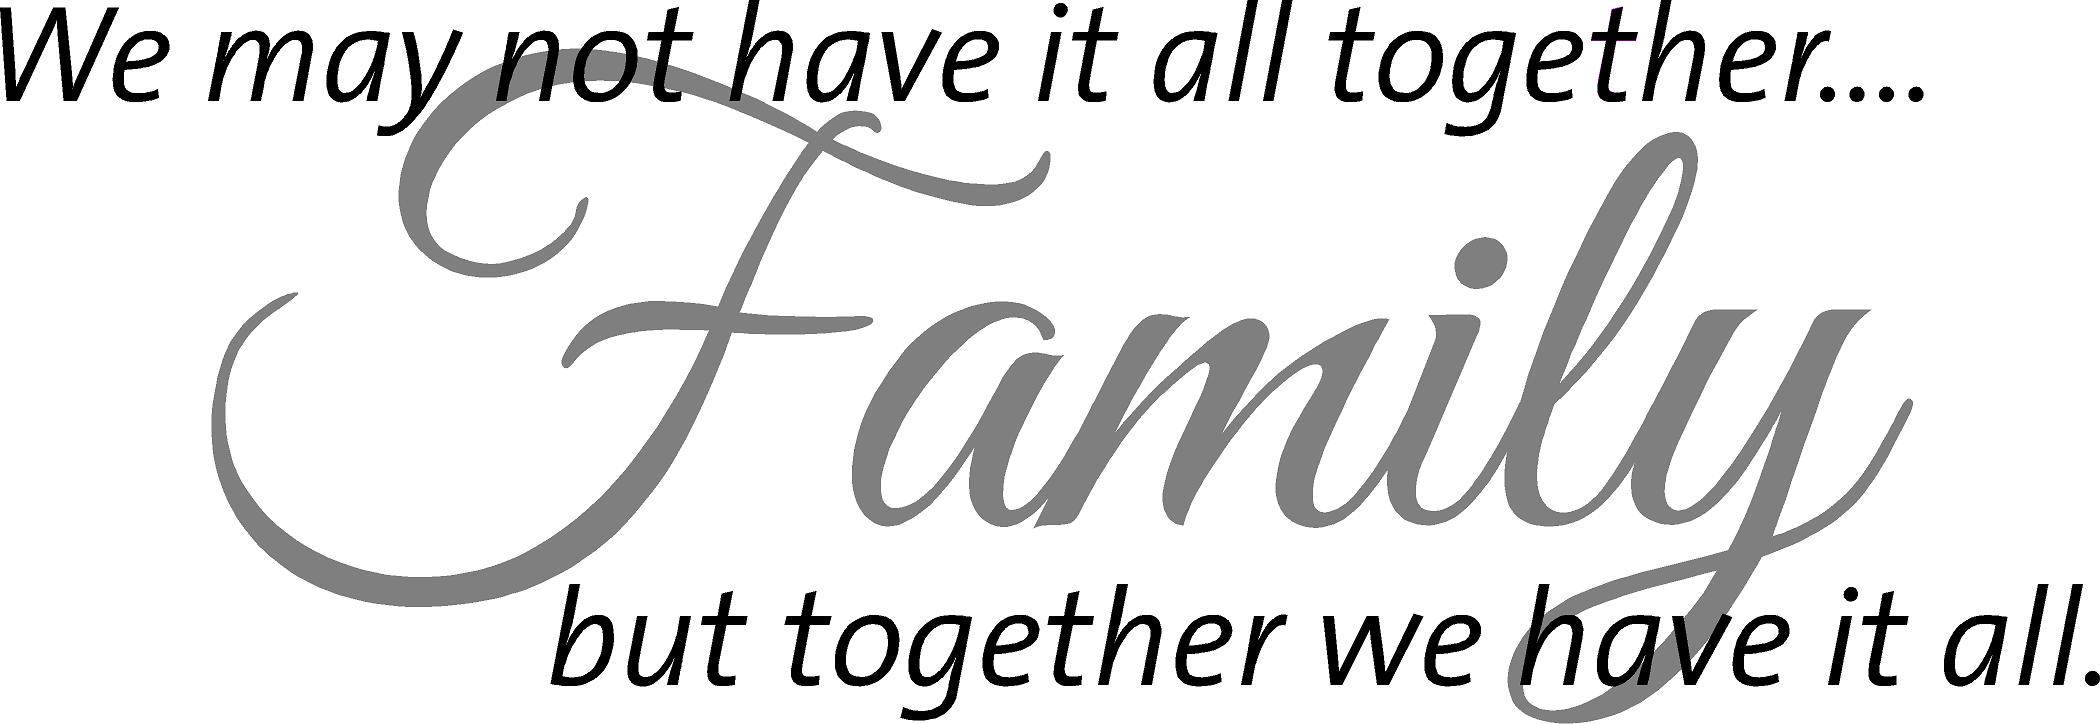 We Are Family Quotes: We May Not Have It All Together...But Together We